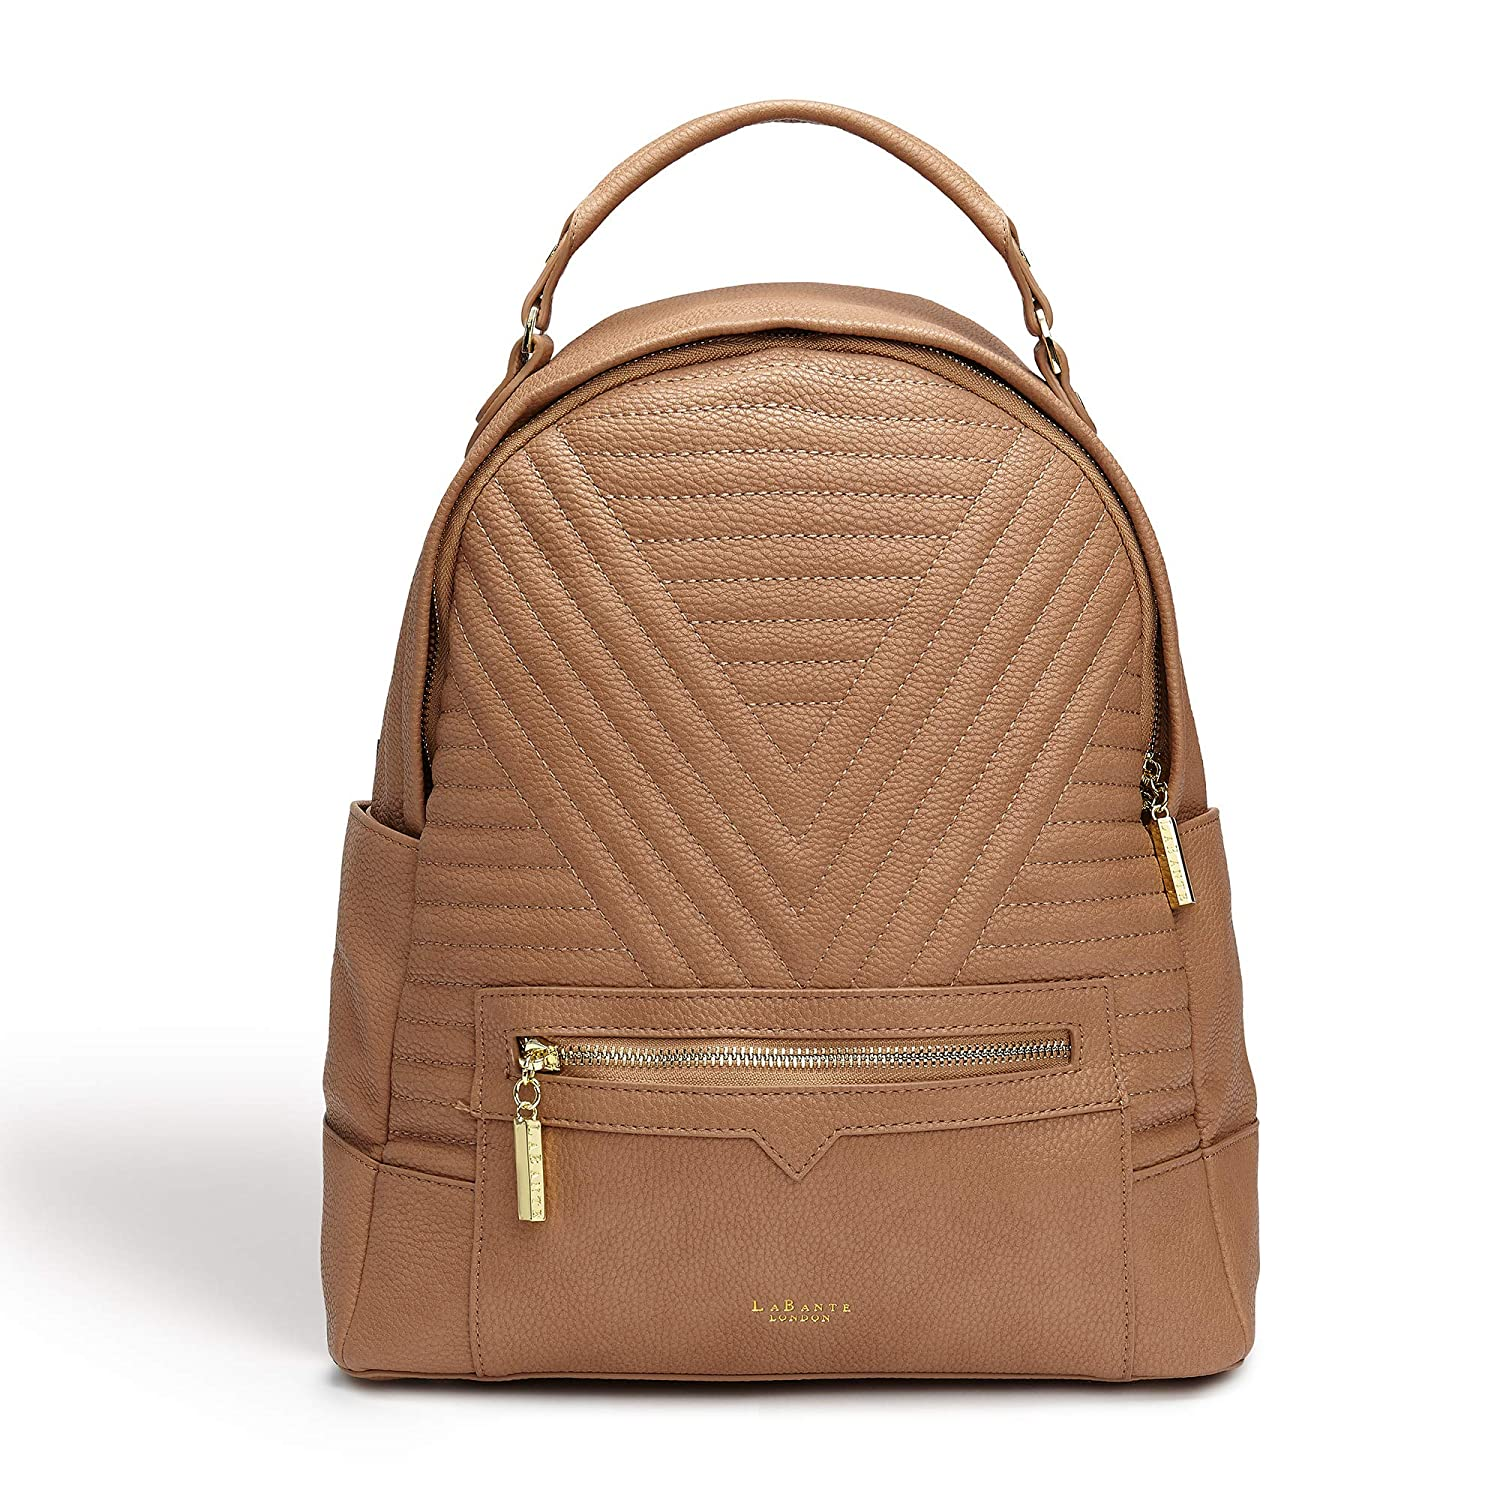 3b547cee9b LaBante - Sac a Dos Femme - Camberwell - Sac a Main Marron Sac a Dos Fille  Sac Cours lycee | Sac a Dos Cuir Sac a Dos Voyage Femme Sac bandouliere ...